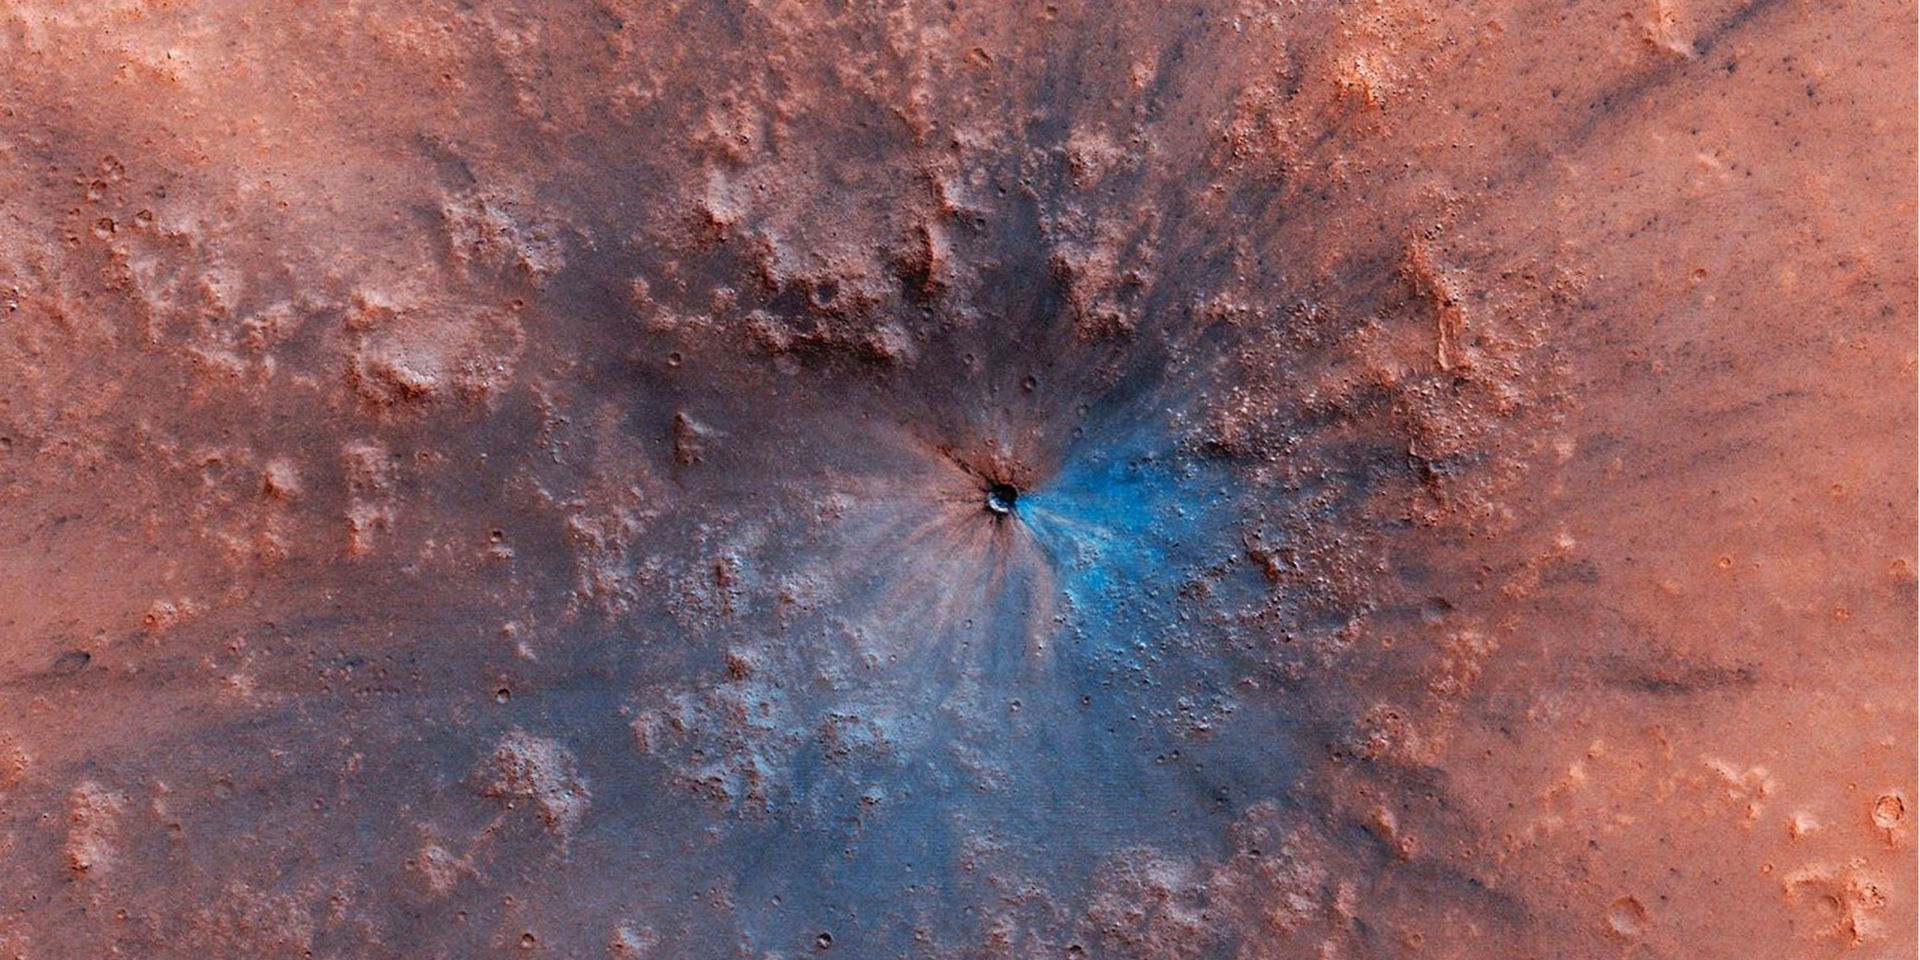 Crater which recently appeared on the surface of Mars